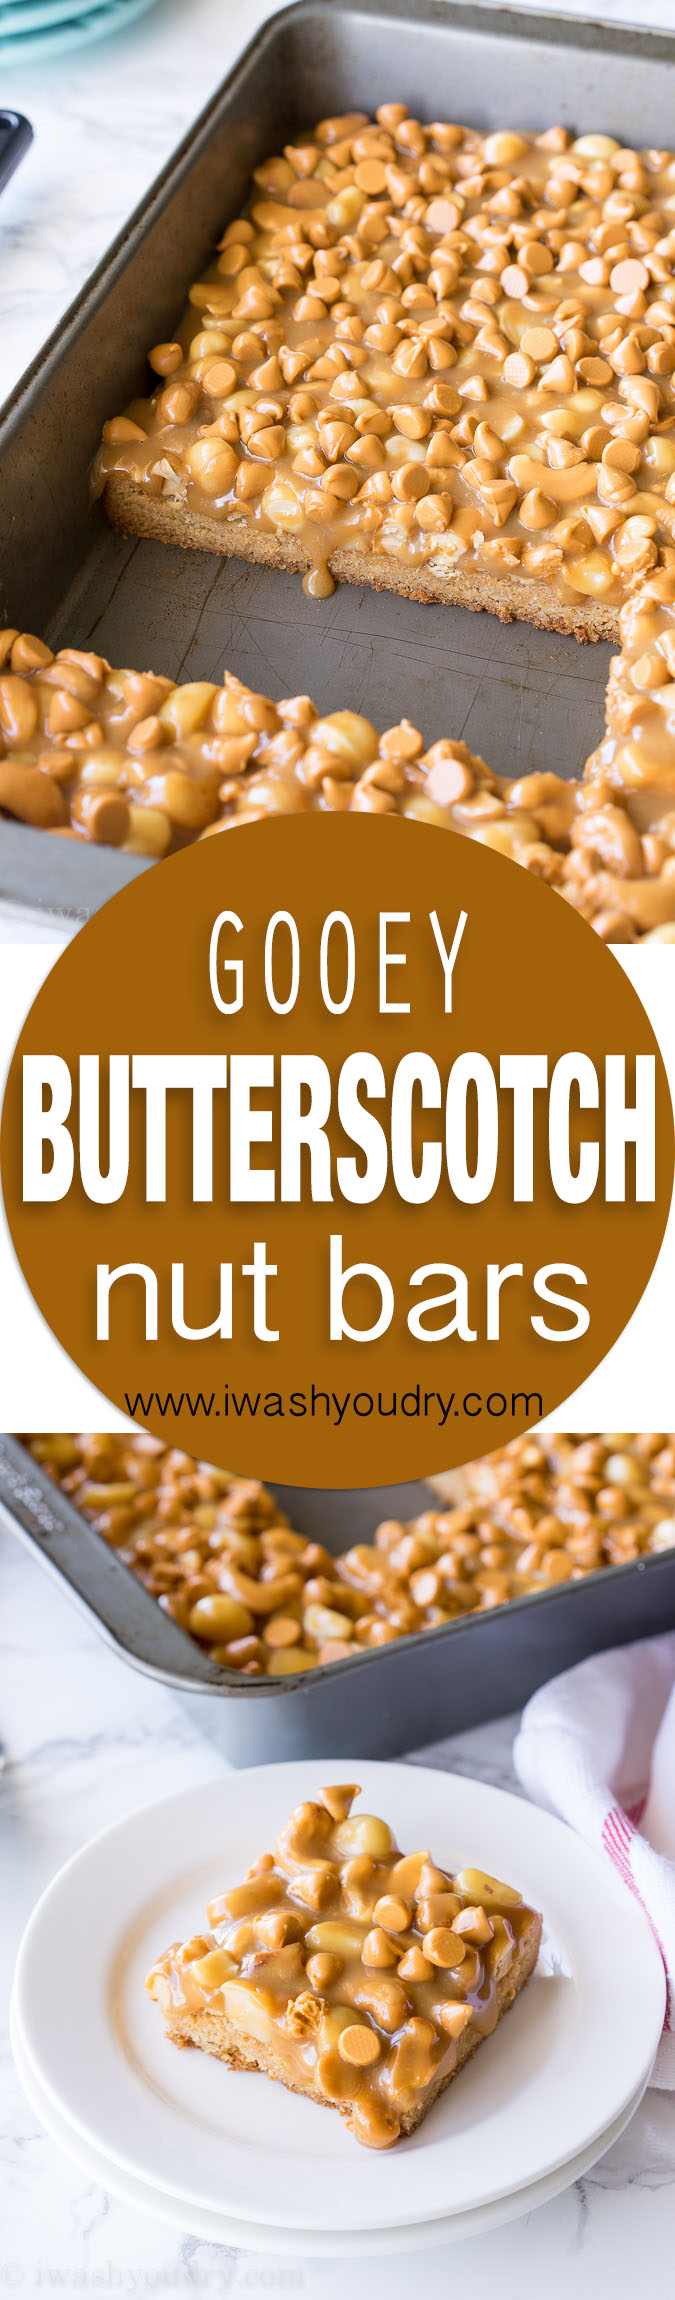 These Gooey Butterscotch Nut Bars are a super quick butterscotch cookie base topped with roasted nuts and gooey caramel. Everyone loves these cookie bars!